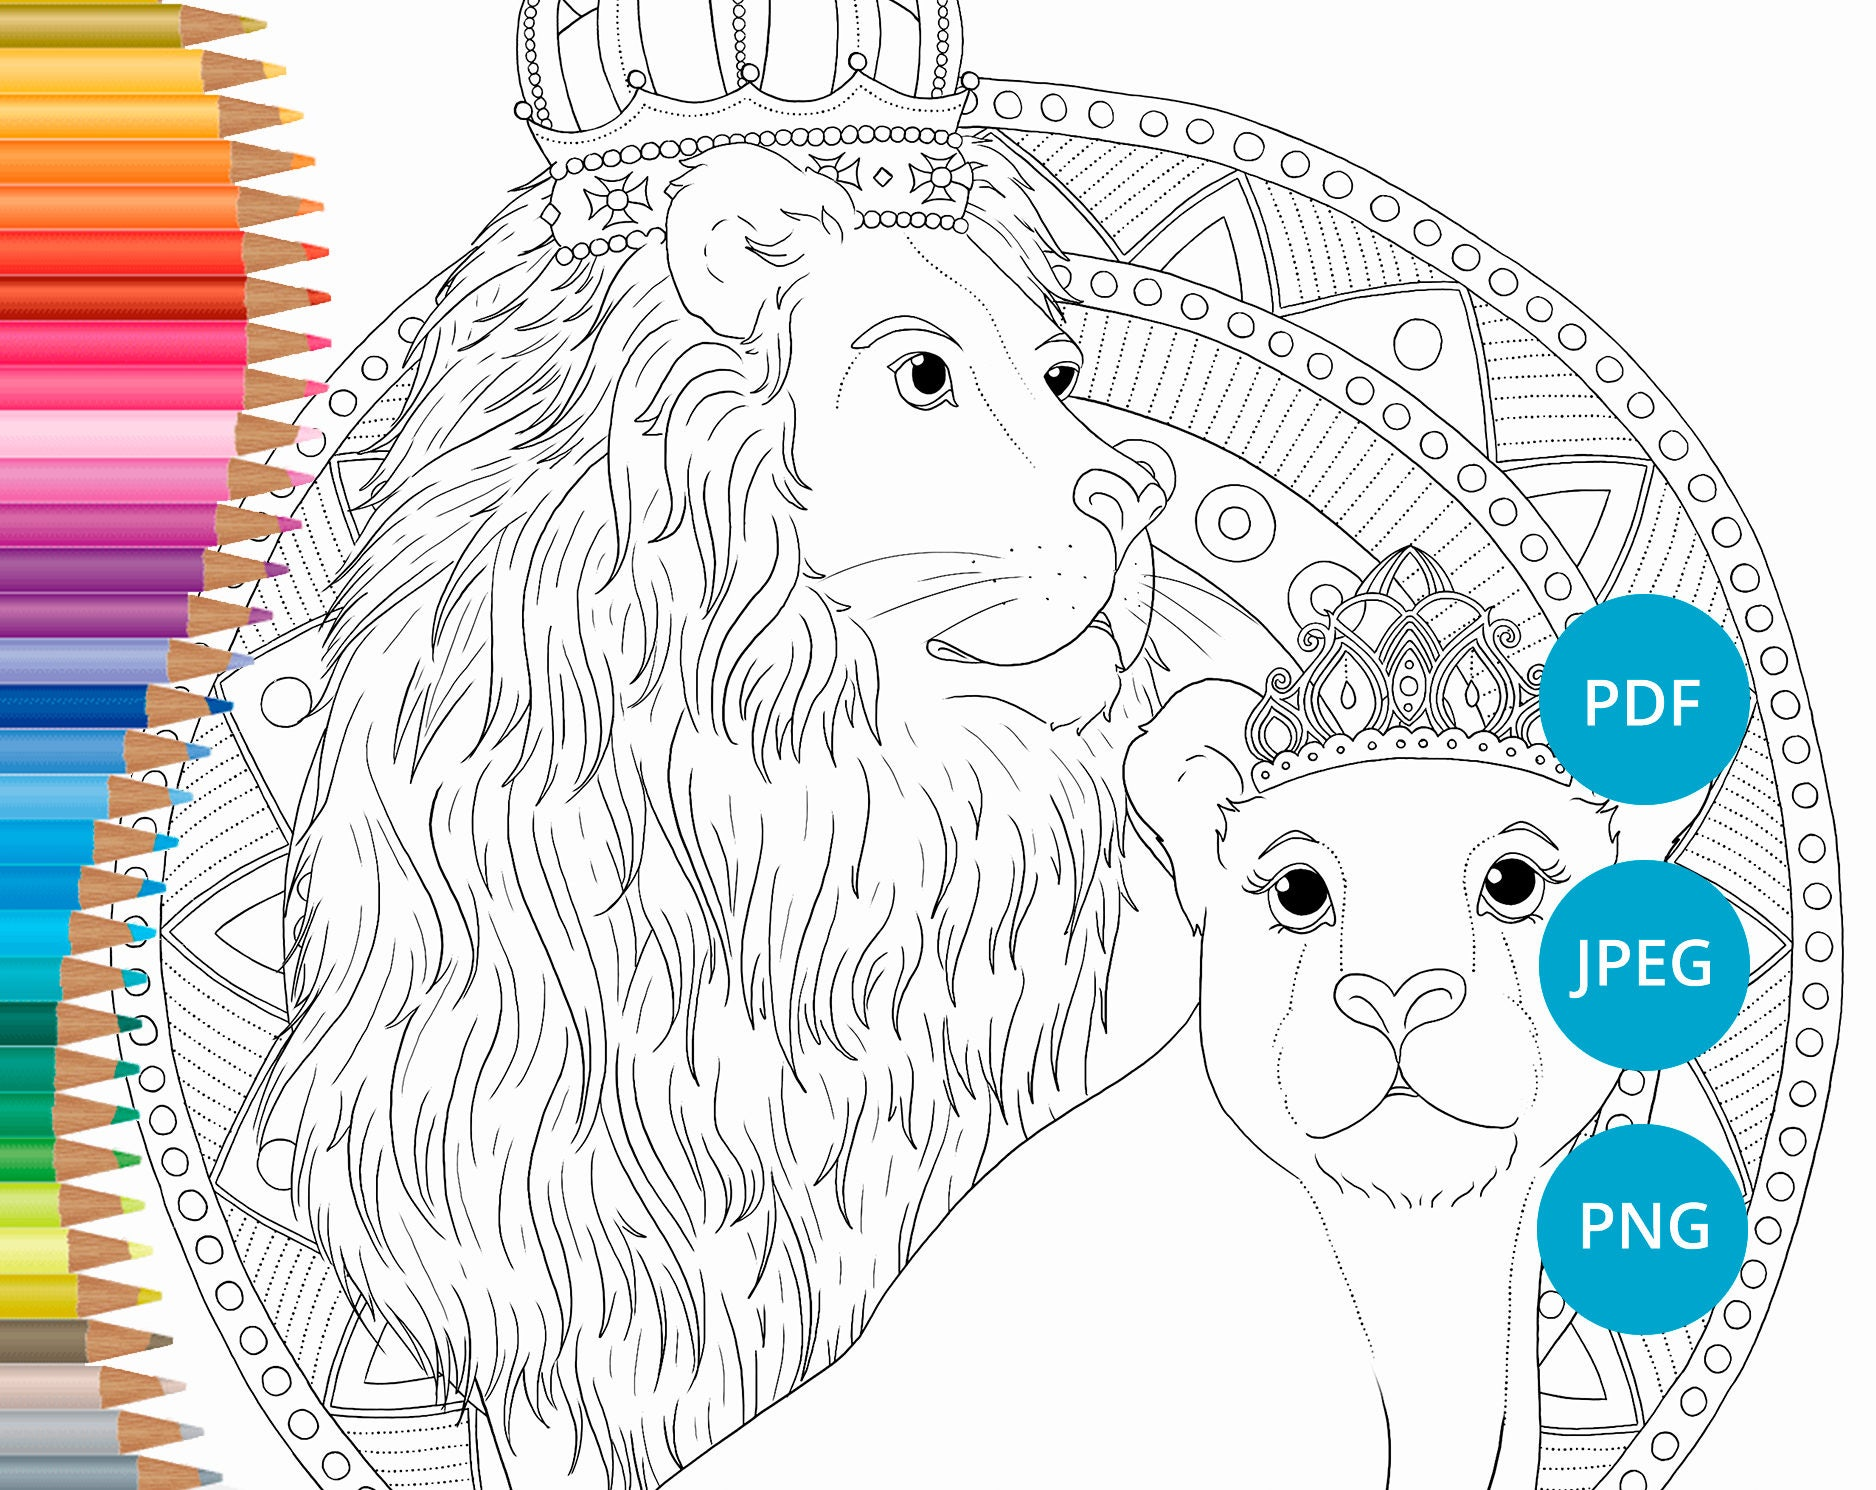 Lion coloring pages, Lioness adult coloring book printable, Safari coloring  pages for adults, Lion printable PDF Download, Mandala coloring